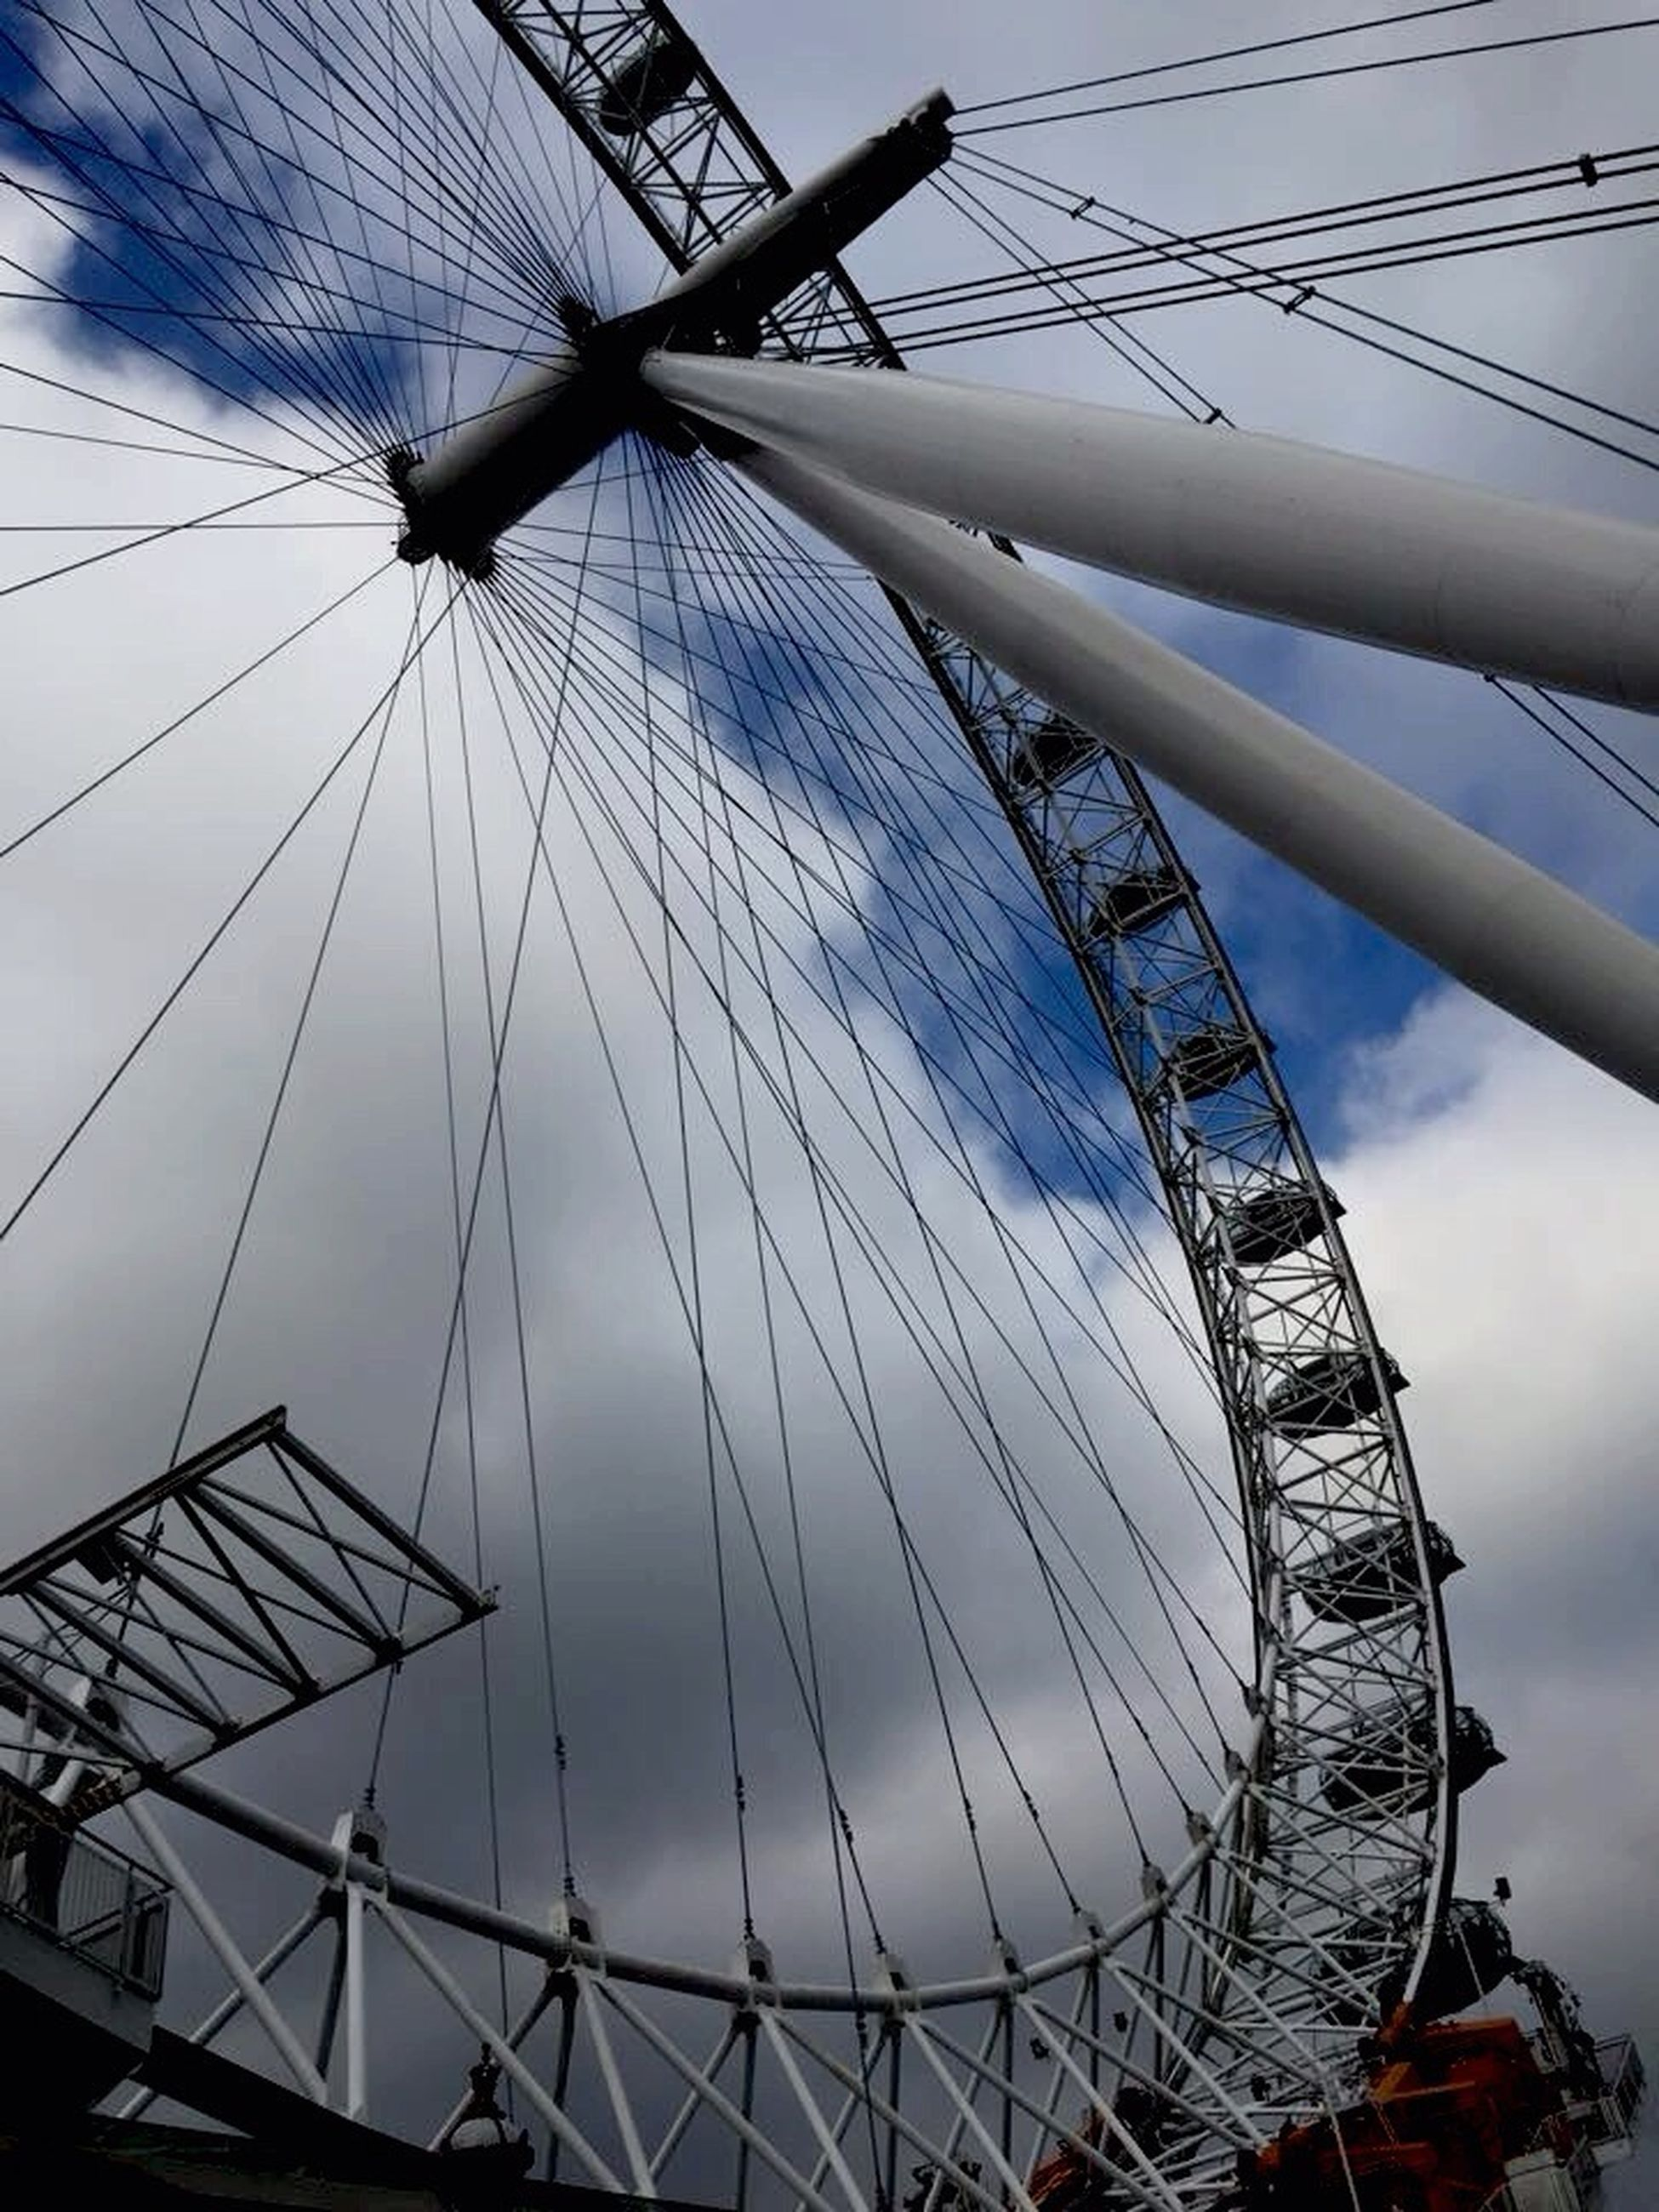 low angle view, ferris wheel, sky, amusement park ride, amusement park, transportation, metal, arts culture and entertainment, mode of transport, built structure, part of, cloud - sky, metallic, engineering, day, architecture, connection, outdoors, travel, no people